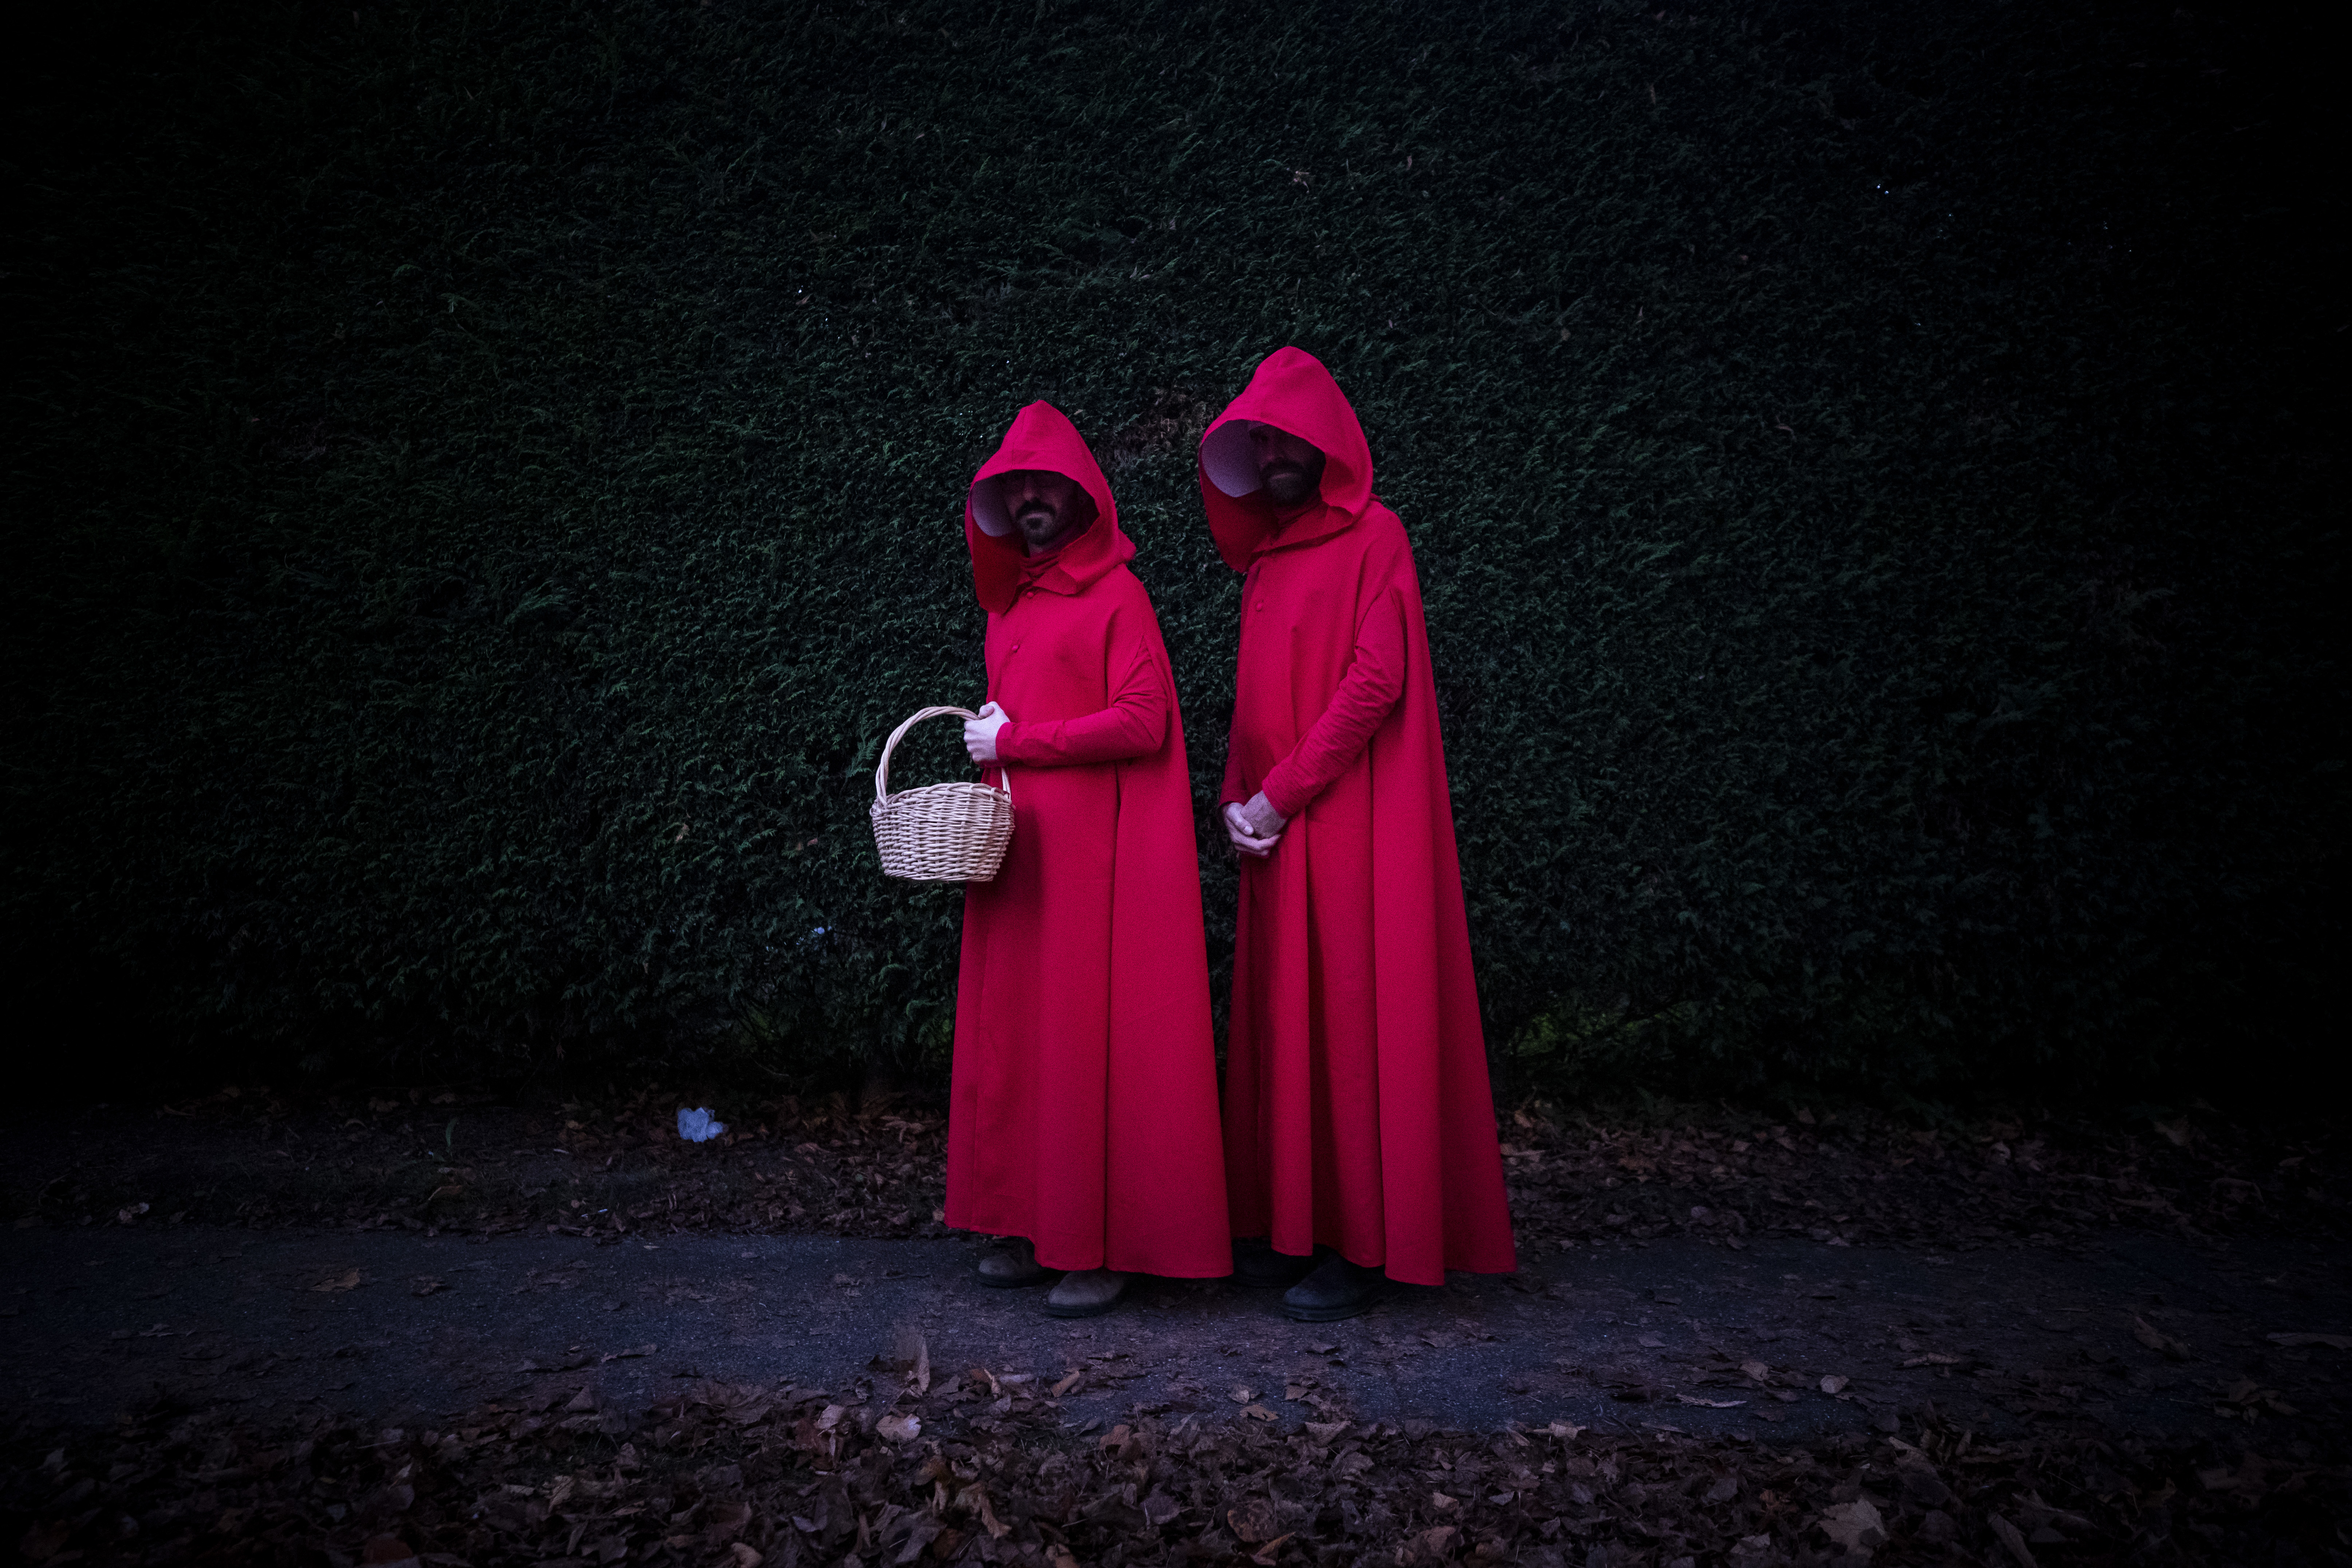 Trick-or-treaters go between houses in Vancouver on Oct. 31, 2019. (Ben Nelms/CBC)